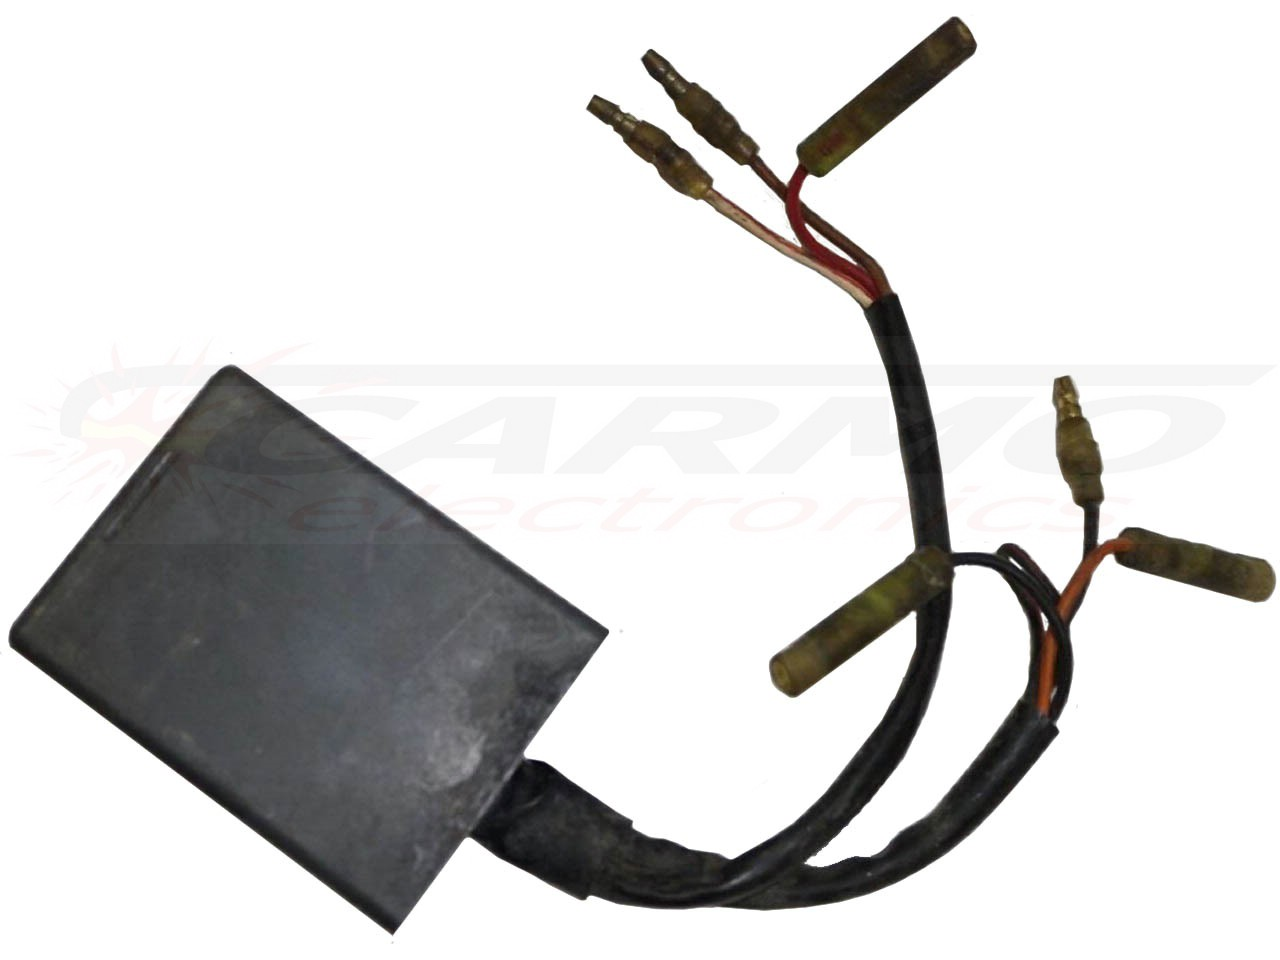 Yamaha Carmo Electronics The Place For Parts Or 02 Grizzly Cdi Box Wiring Diagram Yz125 Igniter Ignition Module Tci Tia01 Tiao1